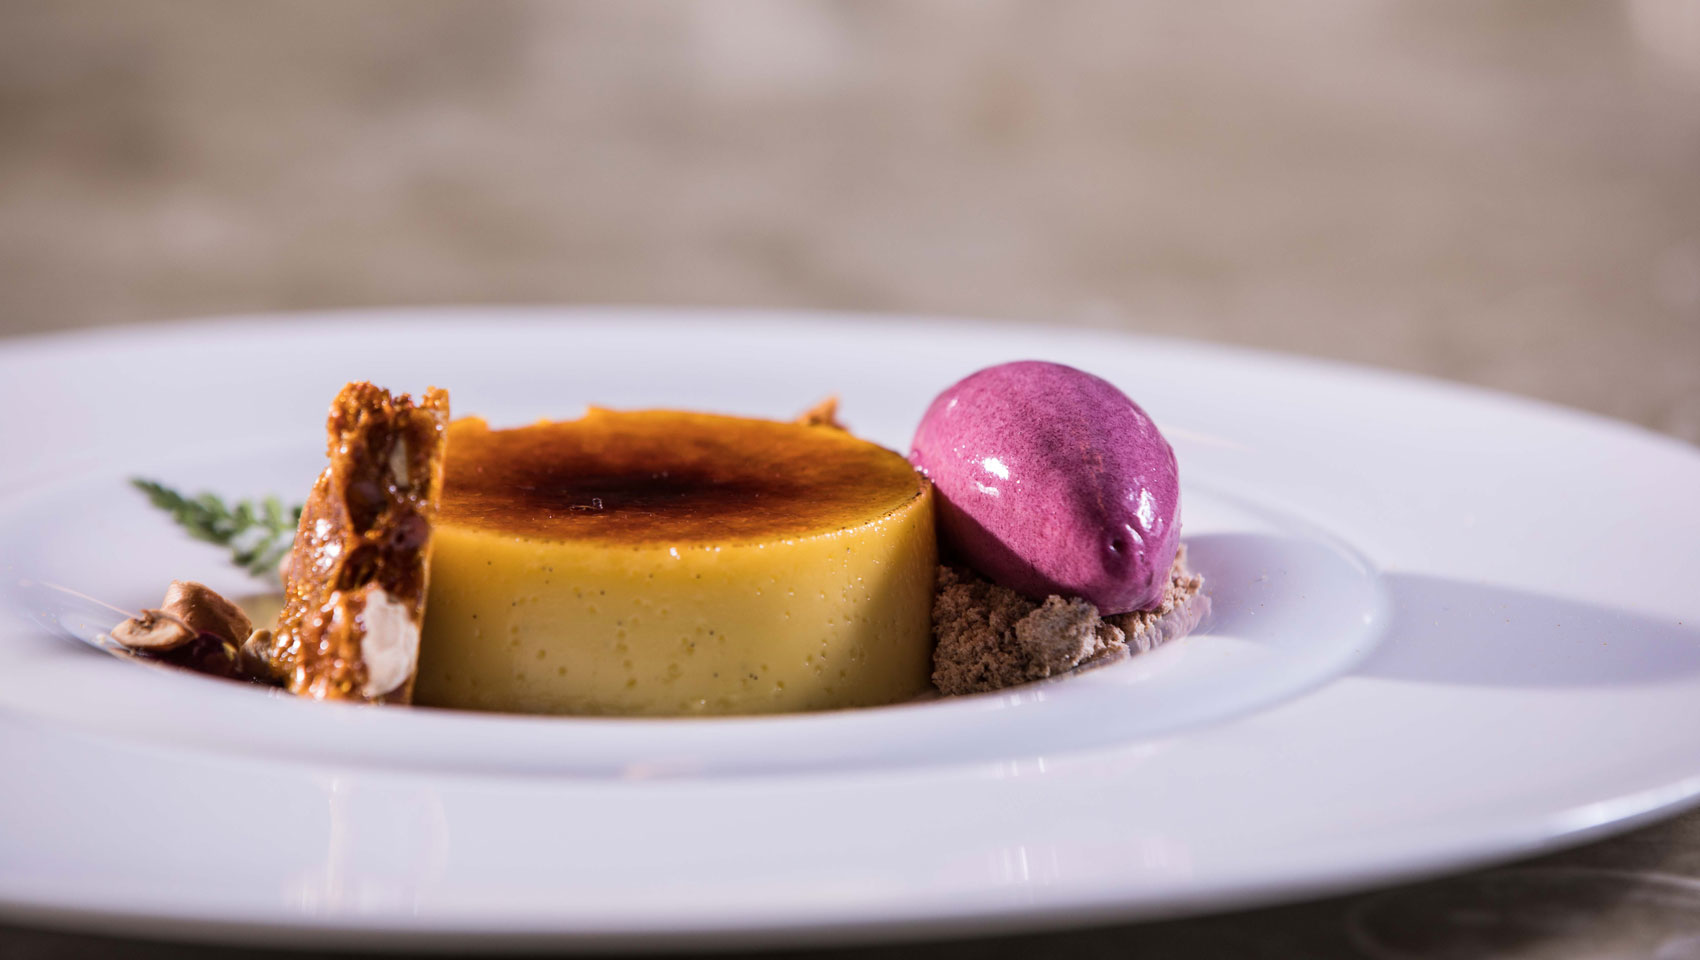 Crème brulee, Toffee, Purple ice cream